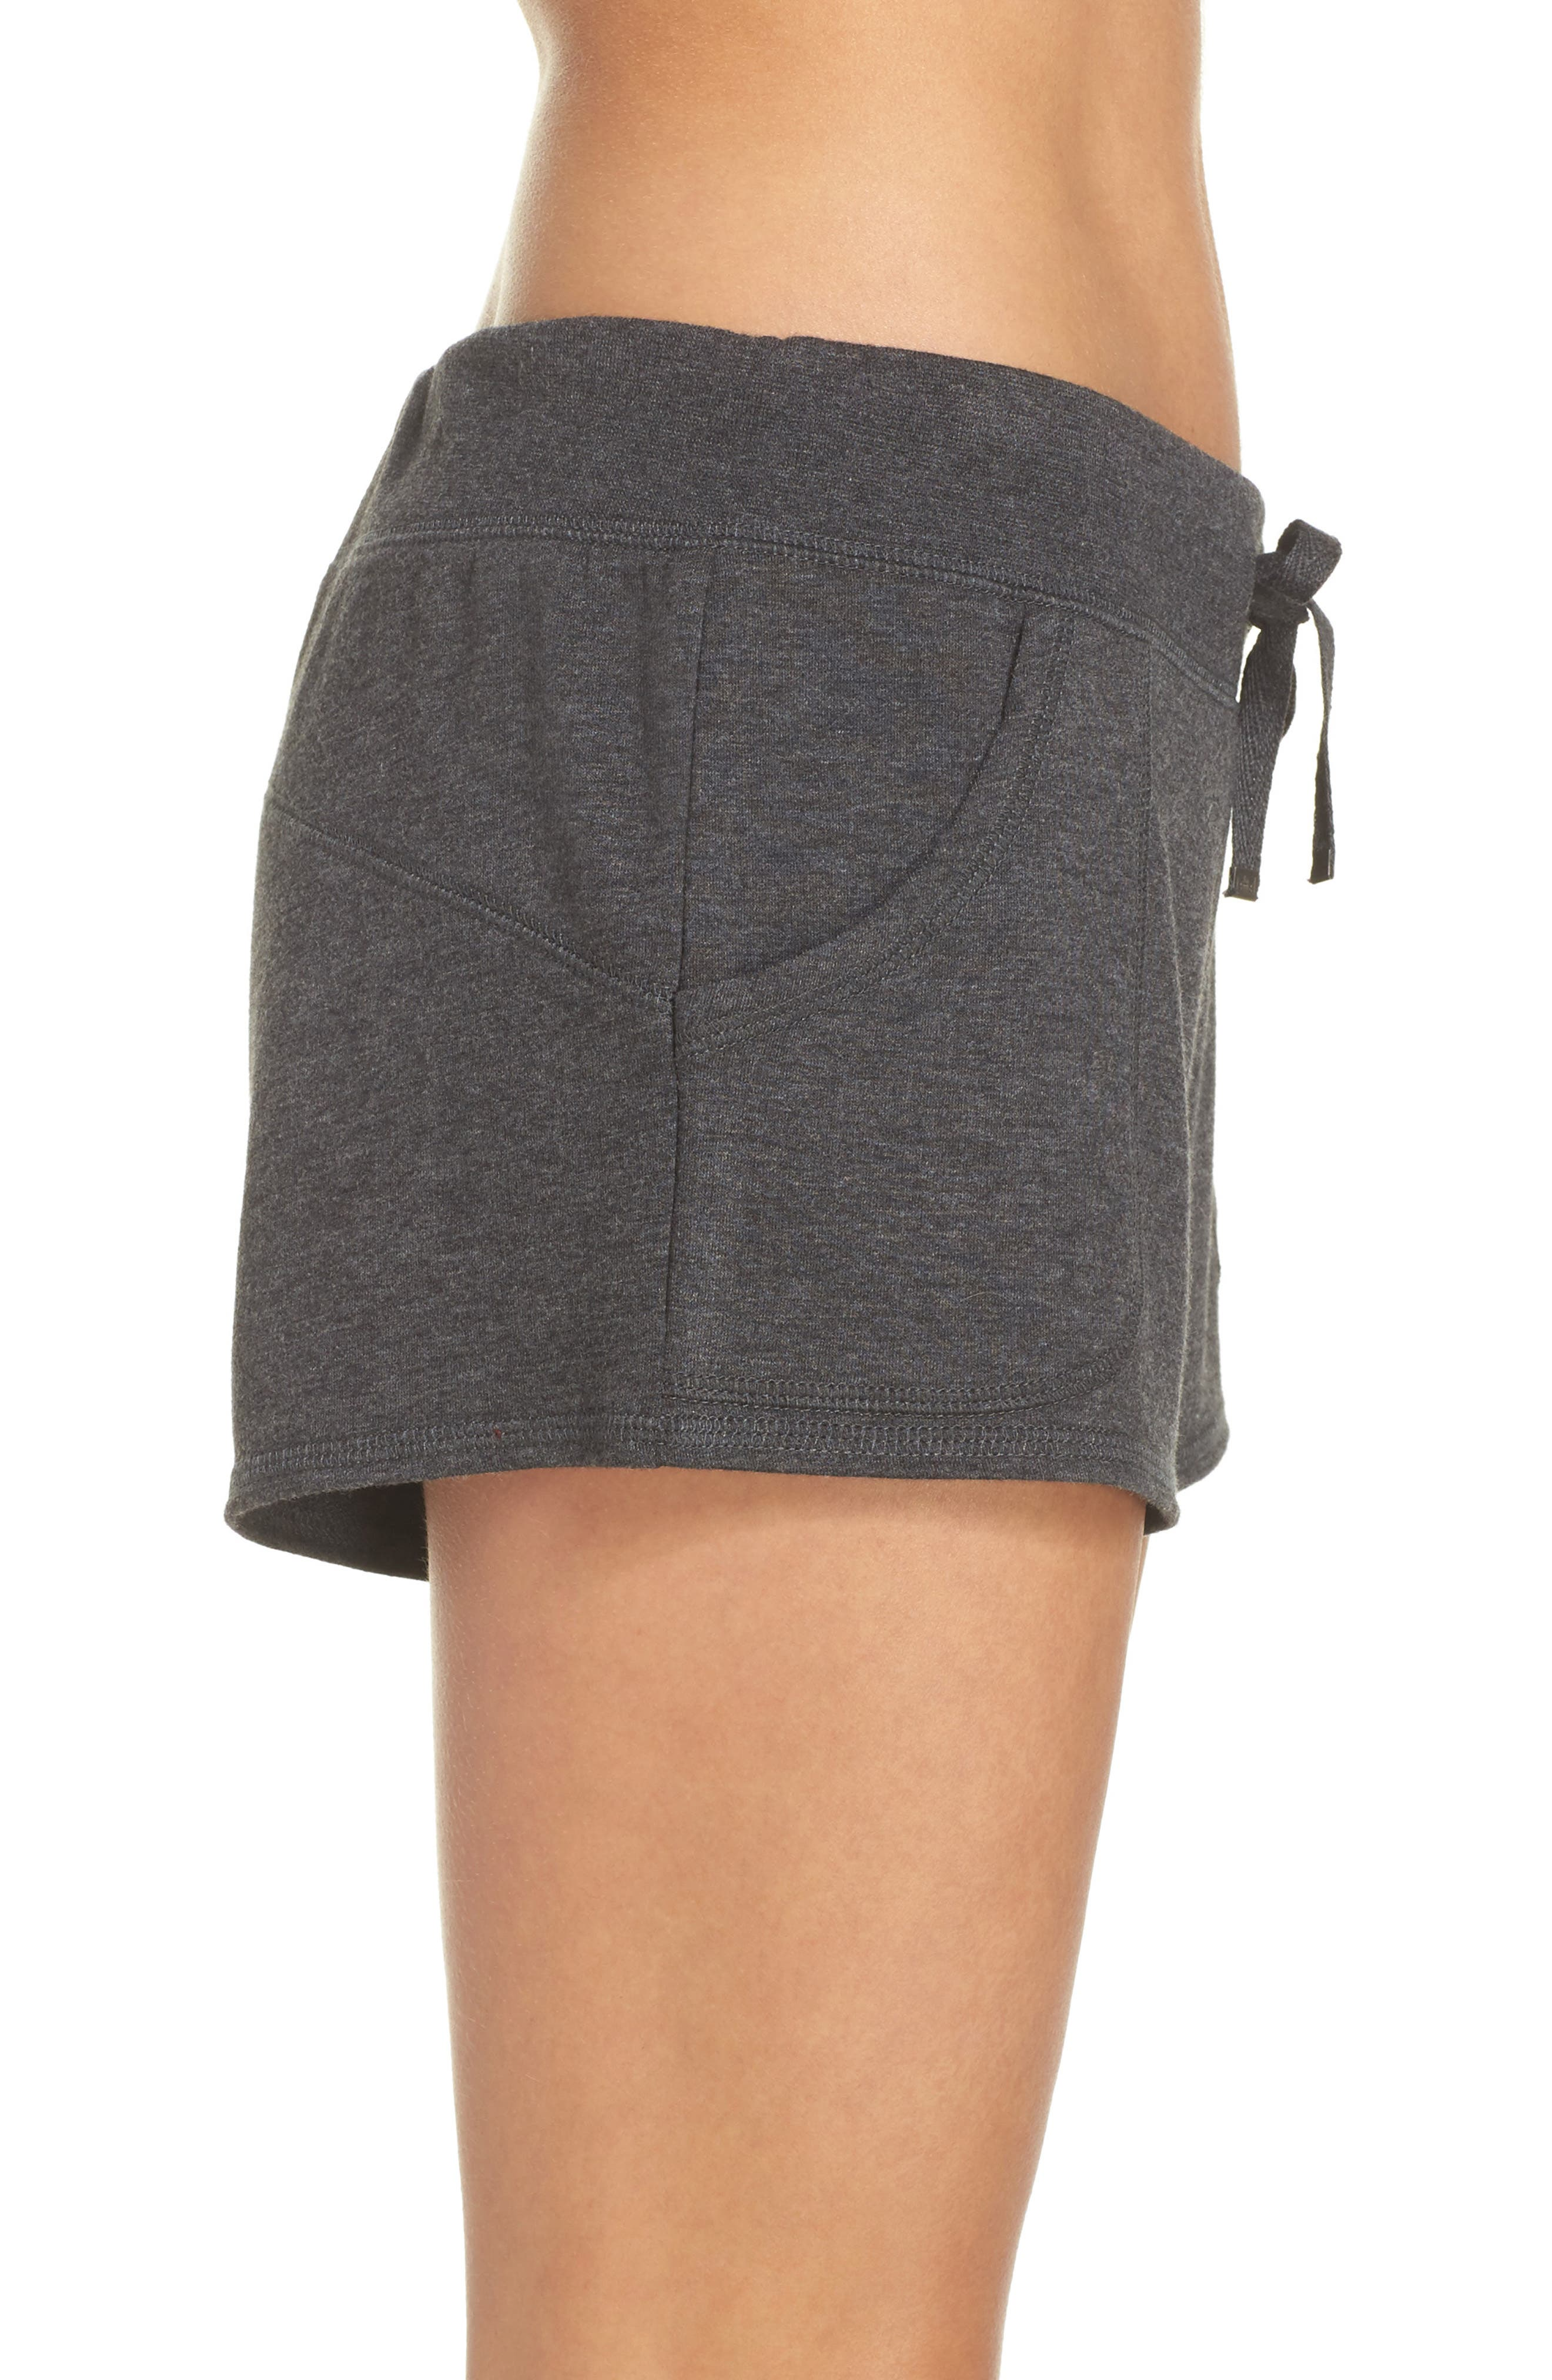 Down To The Details Lounge Shorts,                             Alternate thumbnail 3, color,                             030